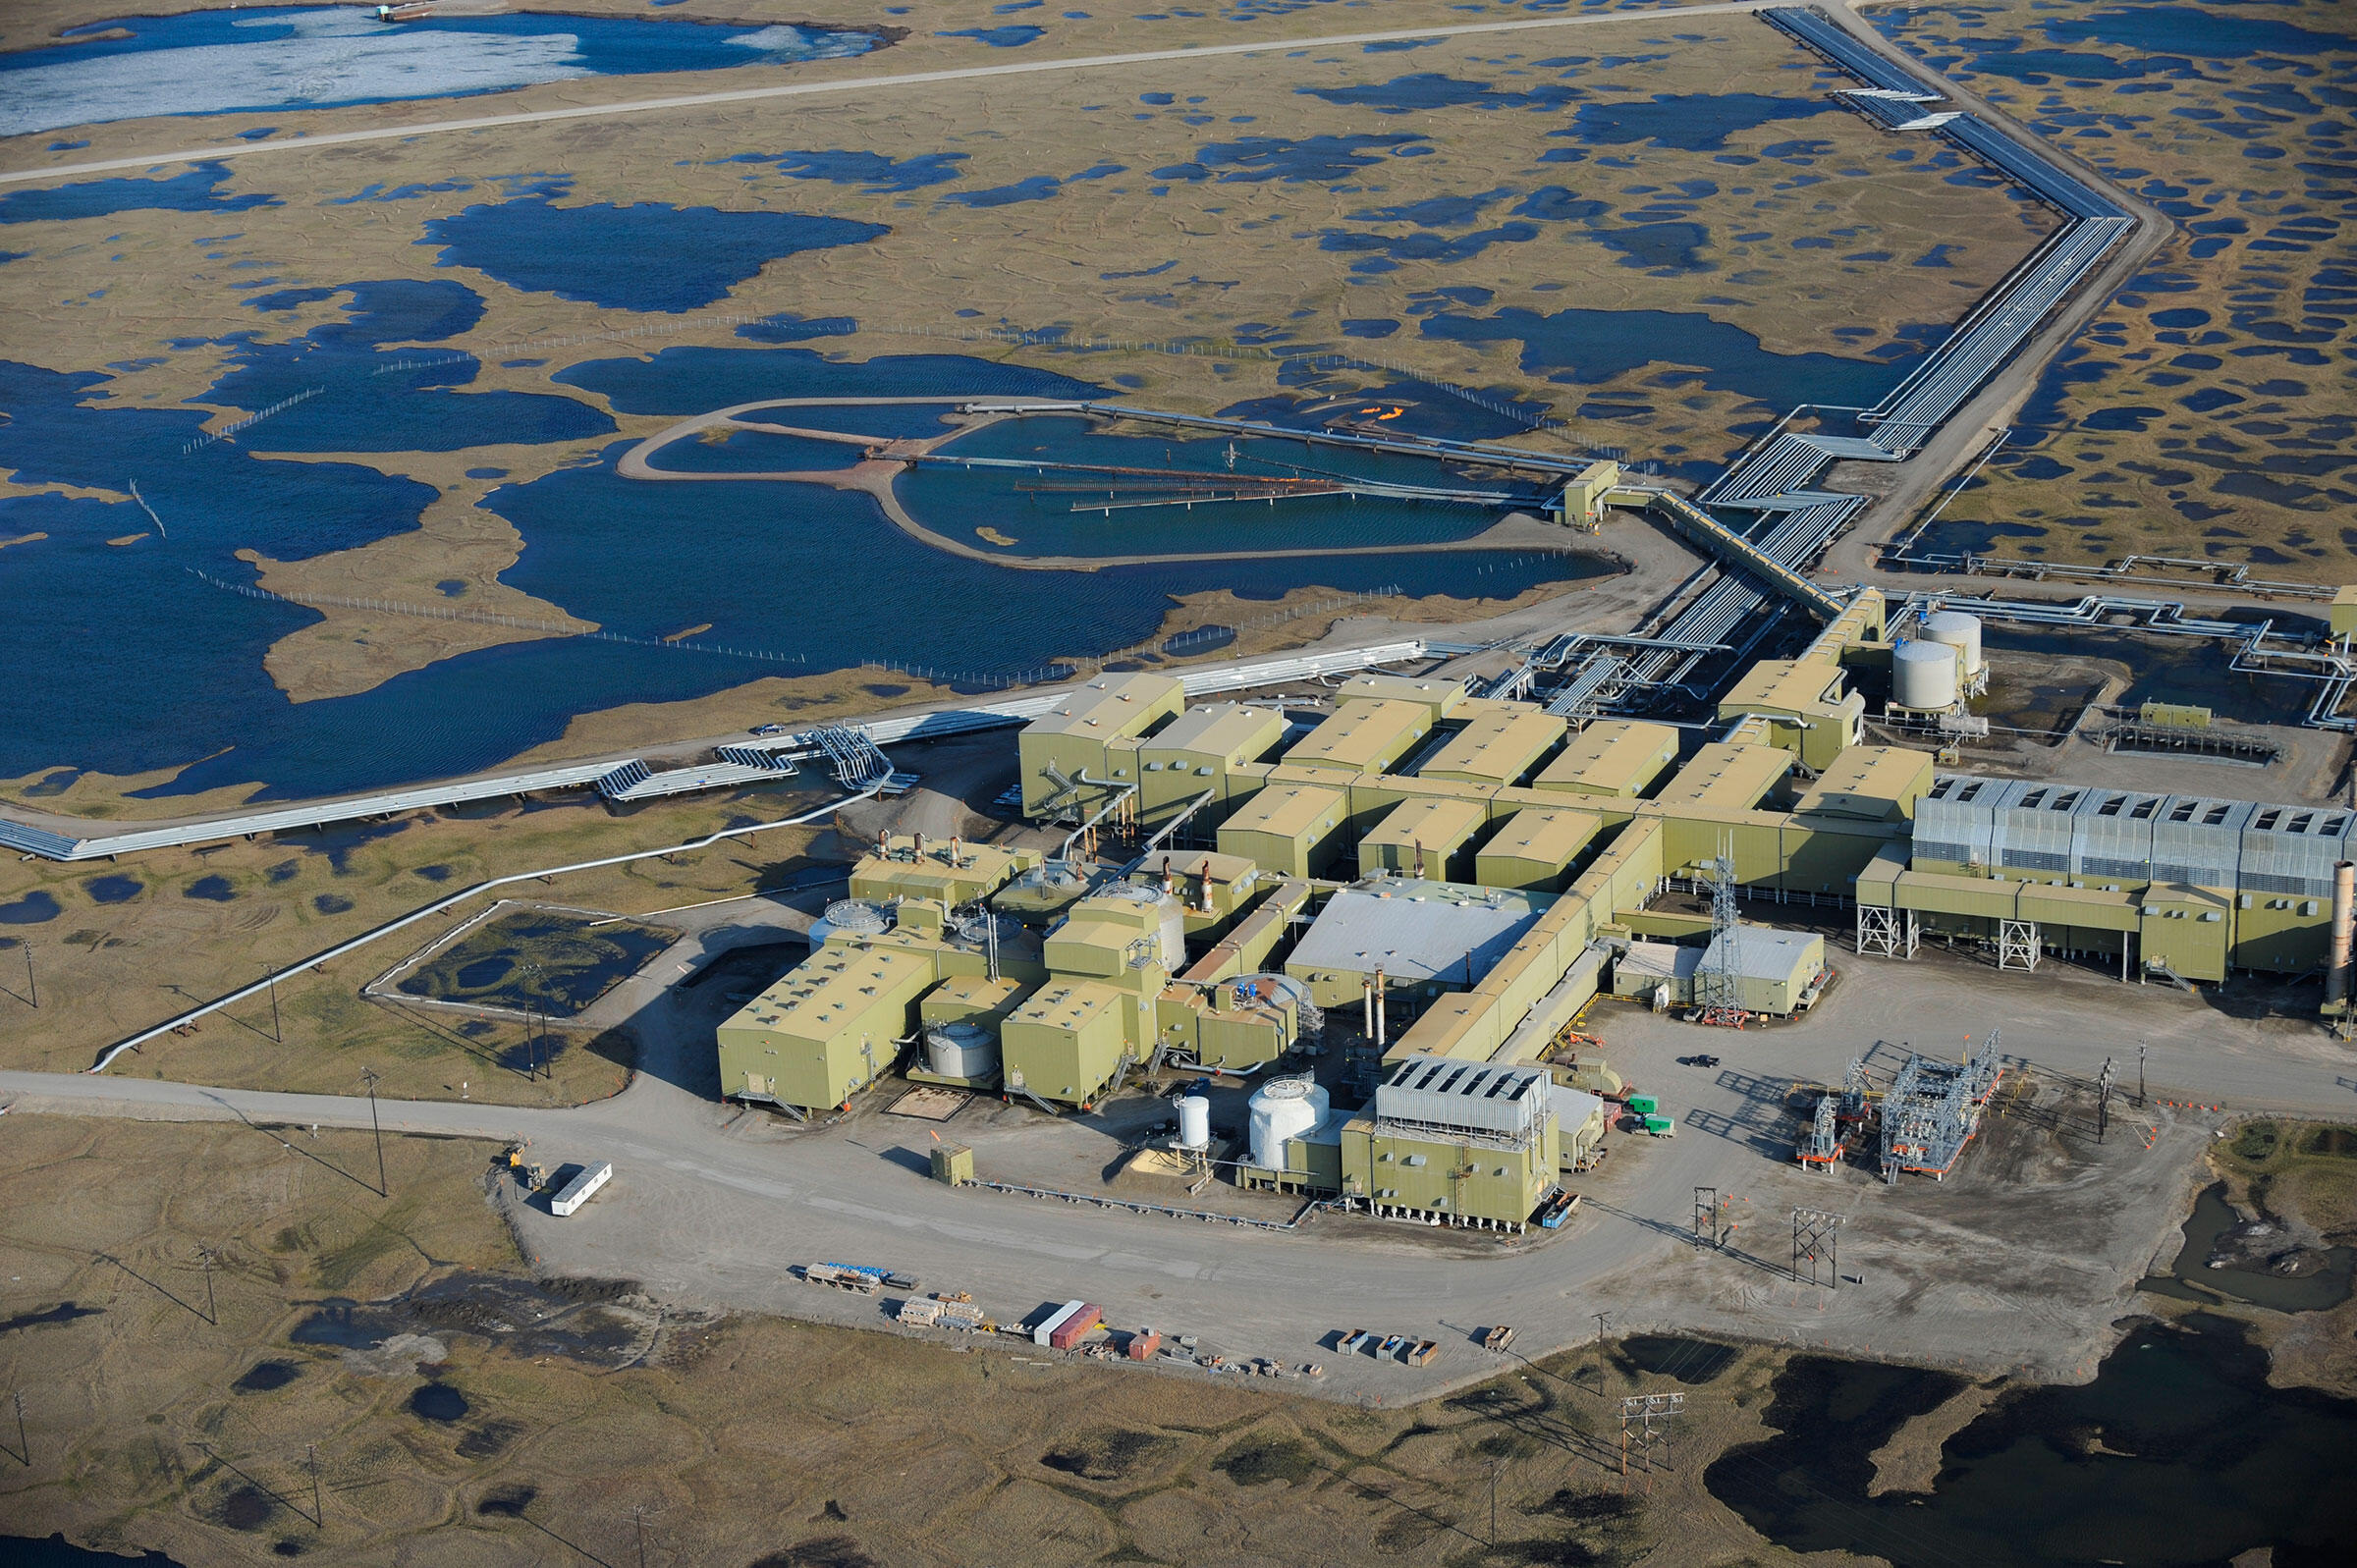 At the Prudhoe Bay oilfield, buildings sit on top of permafrost tundra where 70 species of birds nest. Florian Schulz